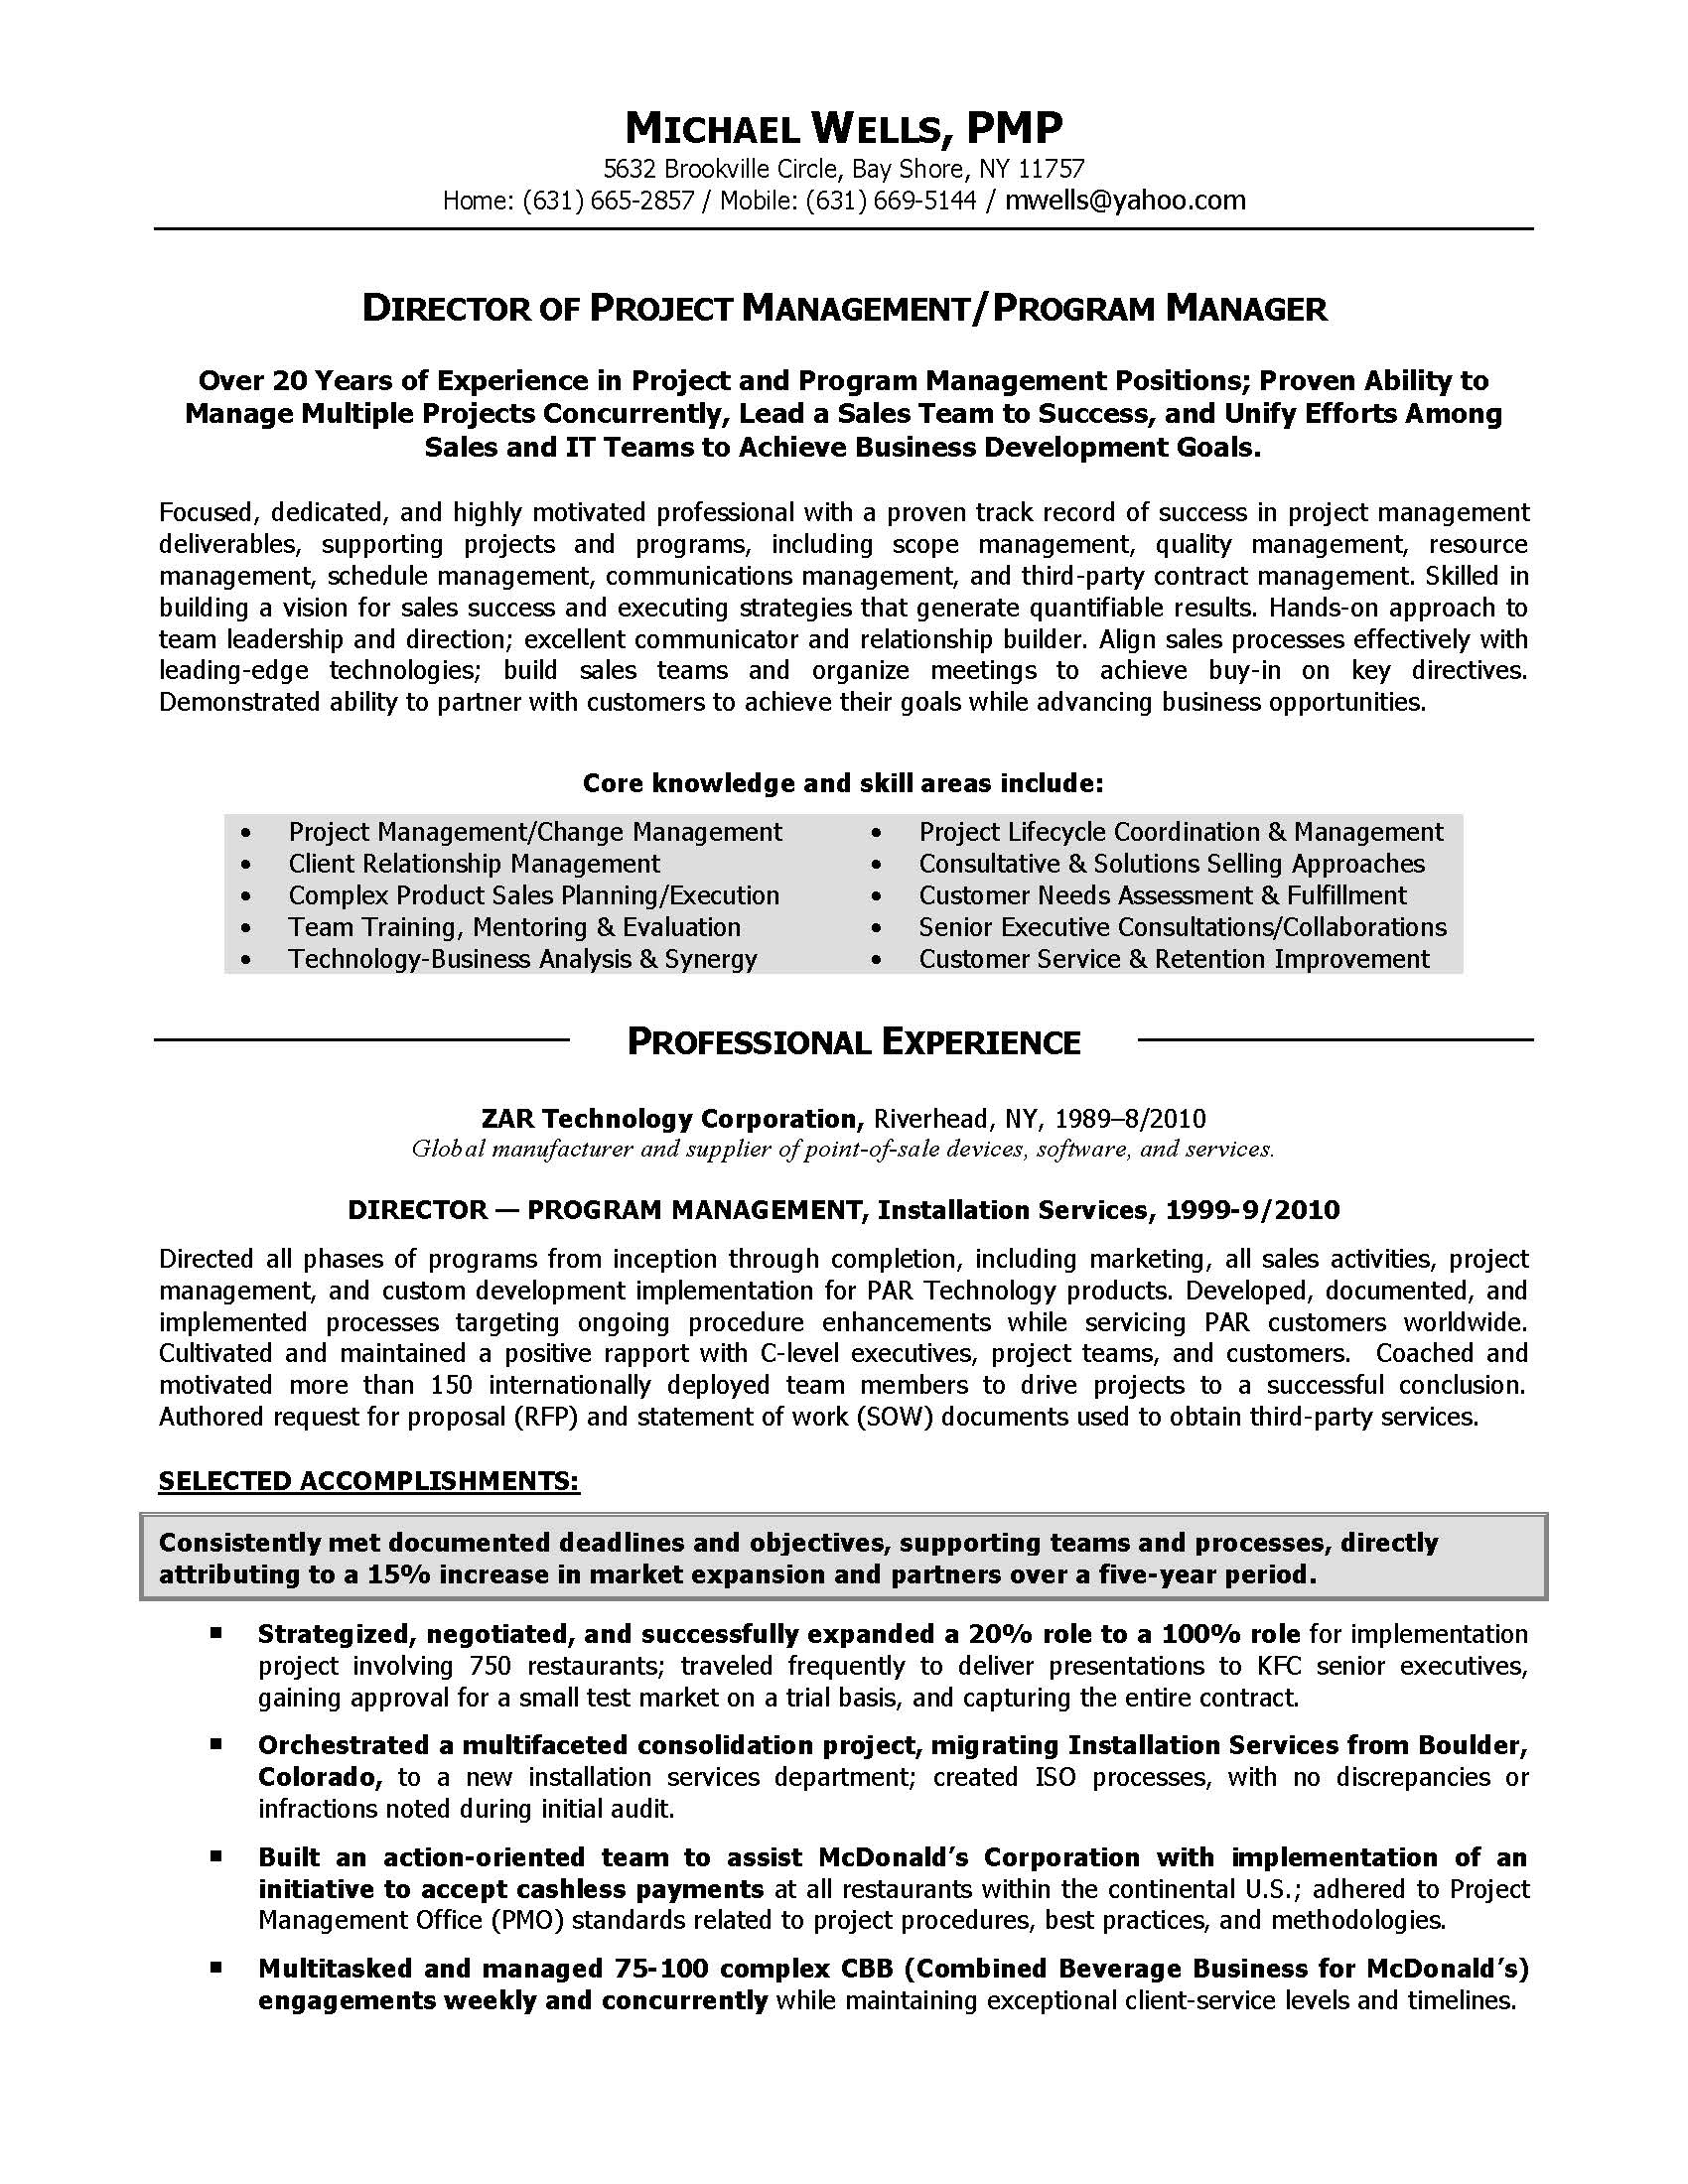 project management director resume sample provided by elite resume writing services